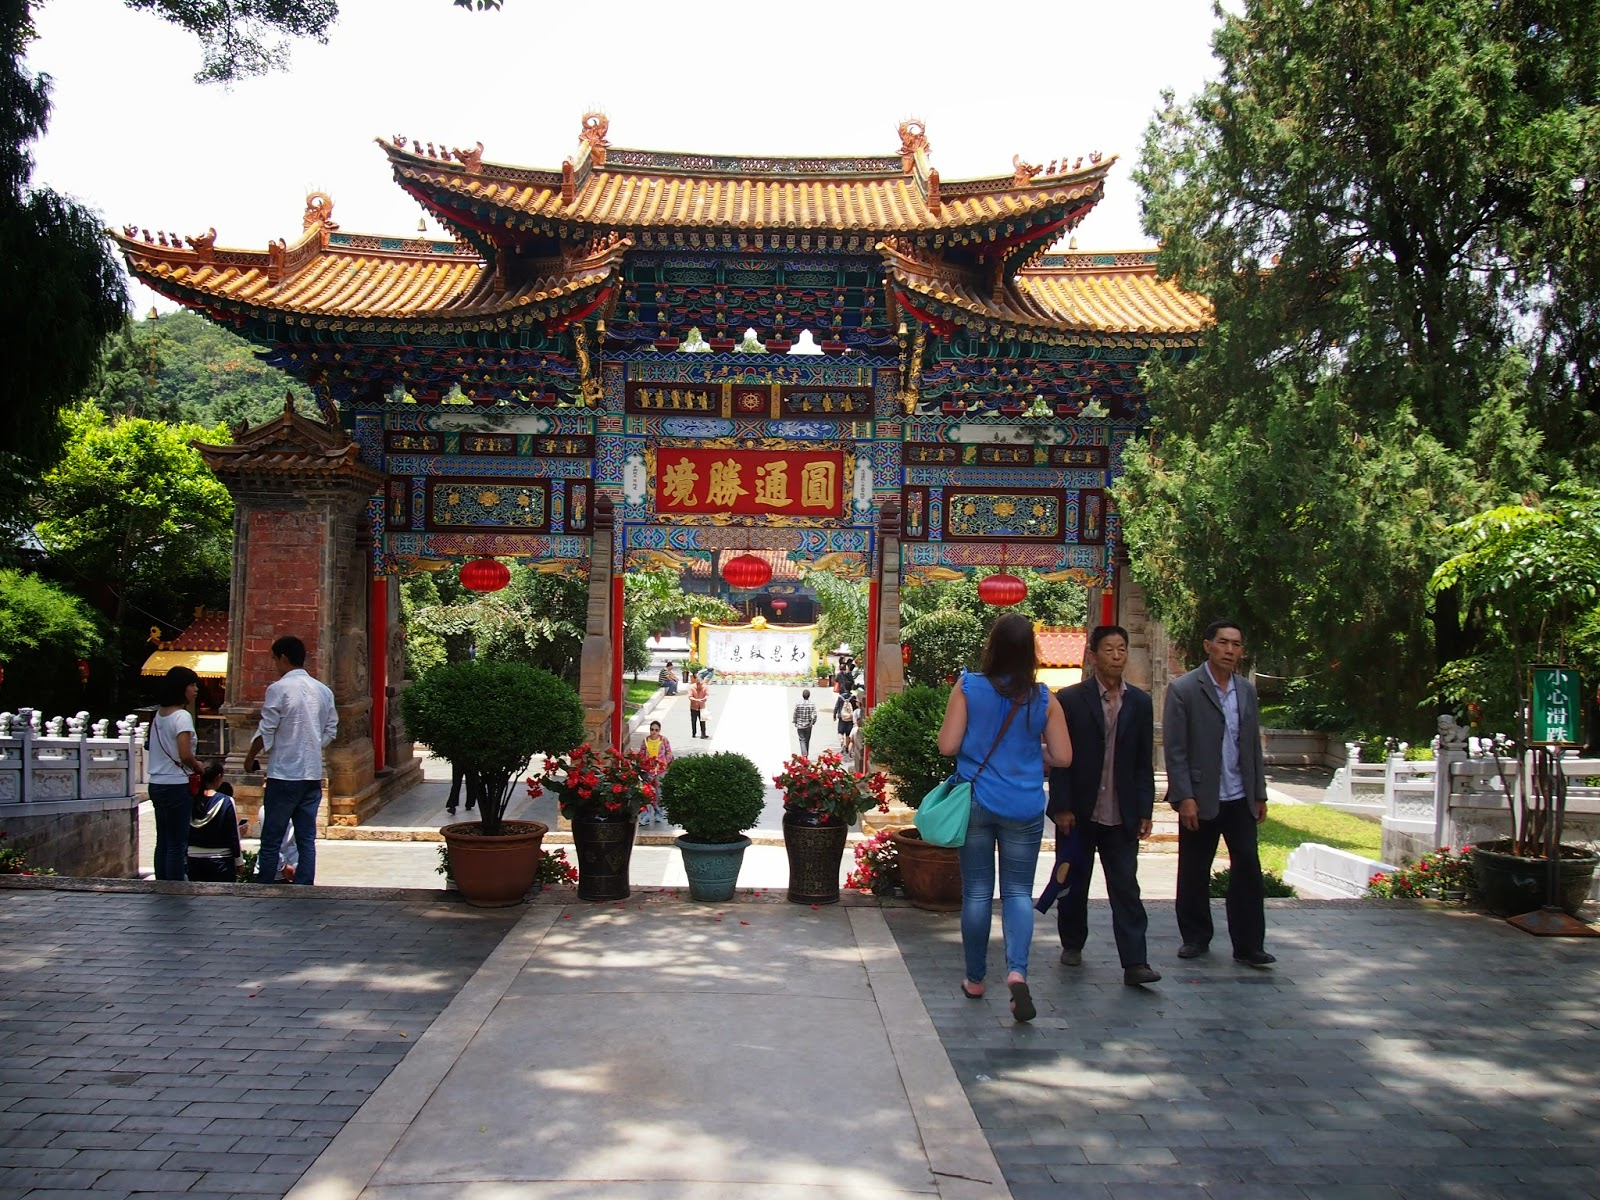 An archway into the Yuan Tong Temple